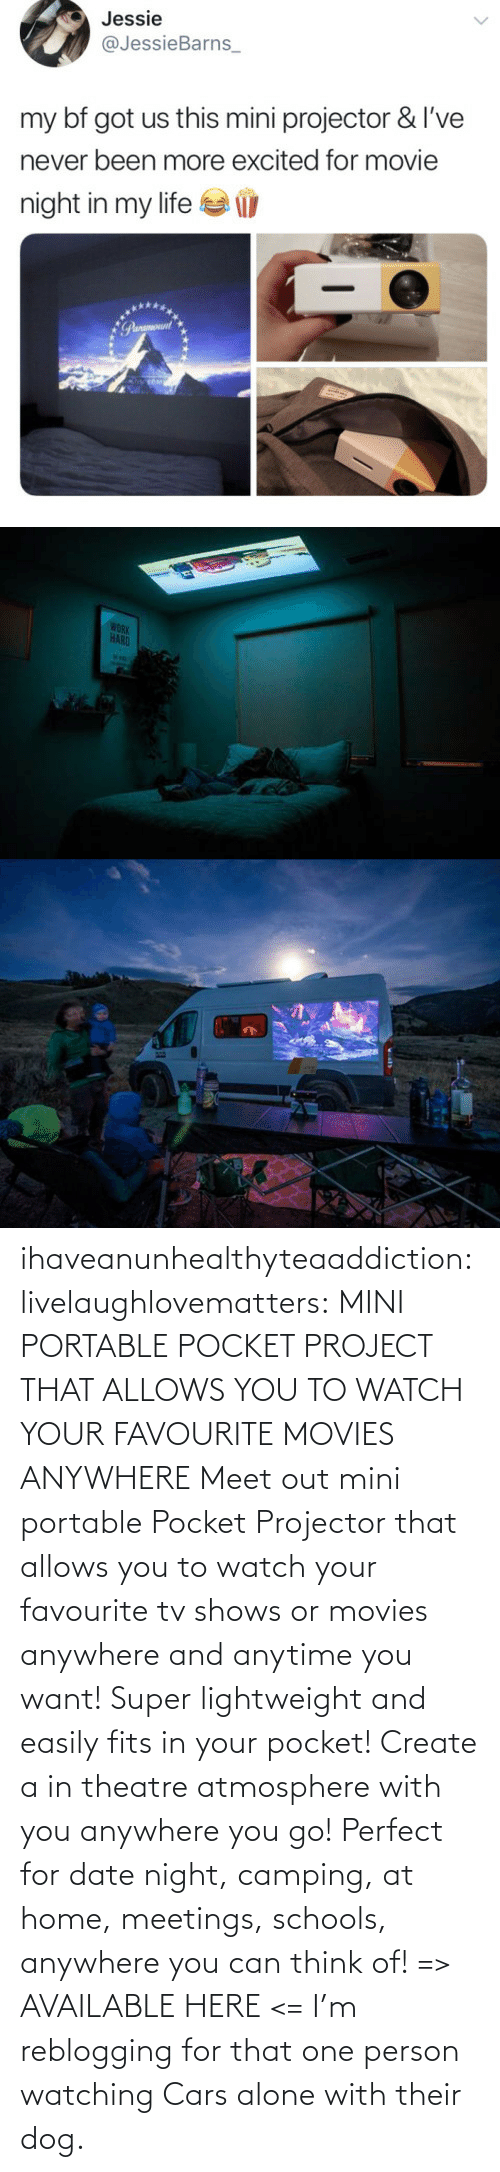 create: ihaveanunhealthyteaaddiction:  livelaughlovematters: MINI PORTABLE POCKET PROJECT THAT ALLOWS YOU TO WATCH YOUR FAVOURITE MOVIES ANYWHERE Meet out mini portable Pocket Projector that allows you to watch your favourite tv shows or movies anywhere and anytime you want! Super lightweight and easily fits in your pocket! Create a in theatre atmosphere with you anywhere you go! Perfect for date night, camping, at home, meetings, schools, anywhere you can think of! => AVAILABLE HERE <=    I'm reblogging for that one person watching Cars alone with their dog.